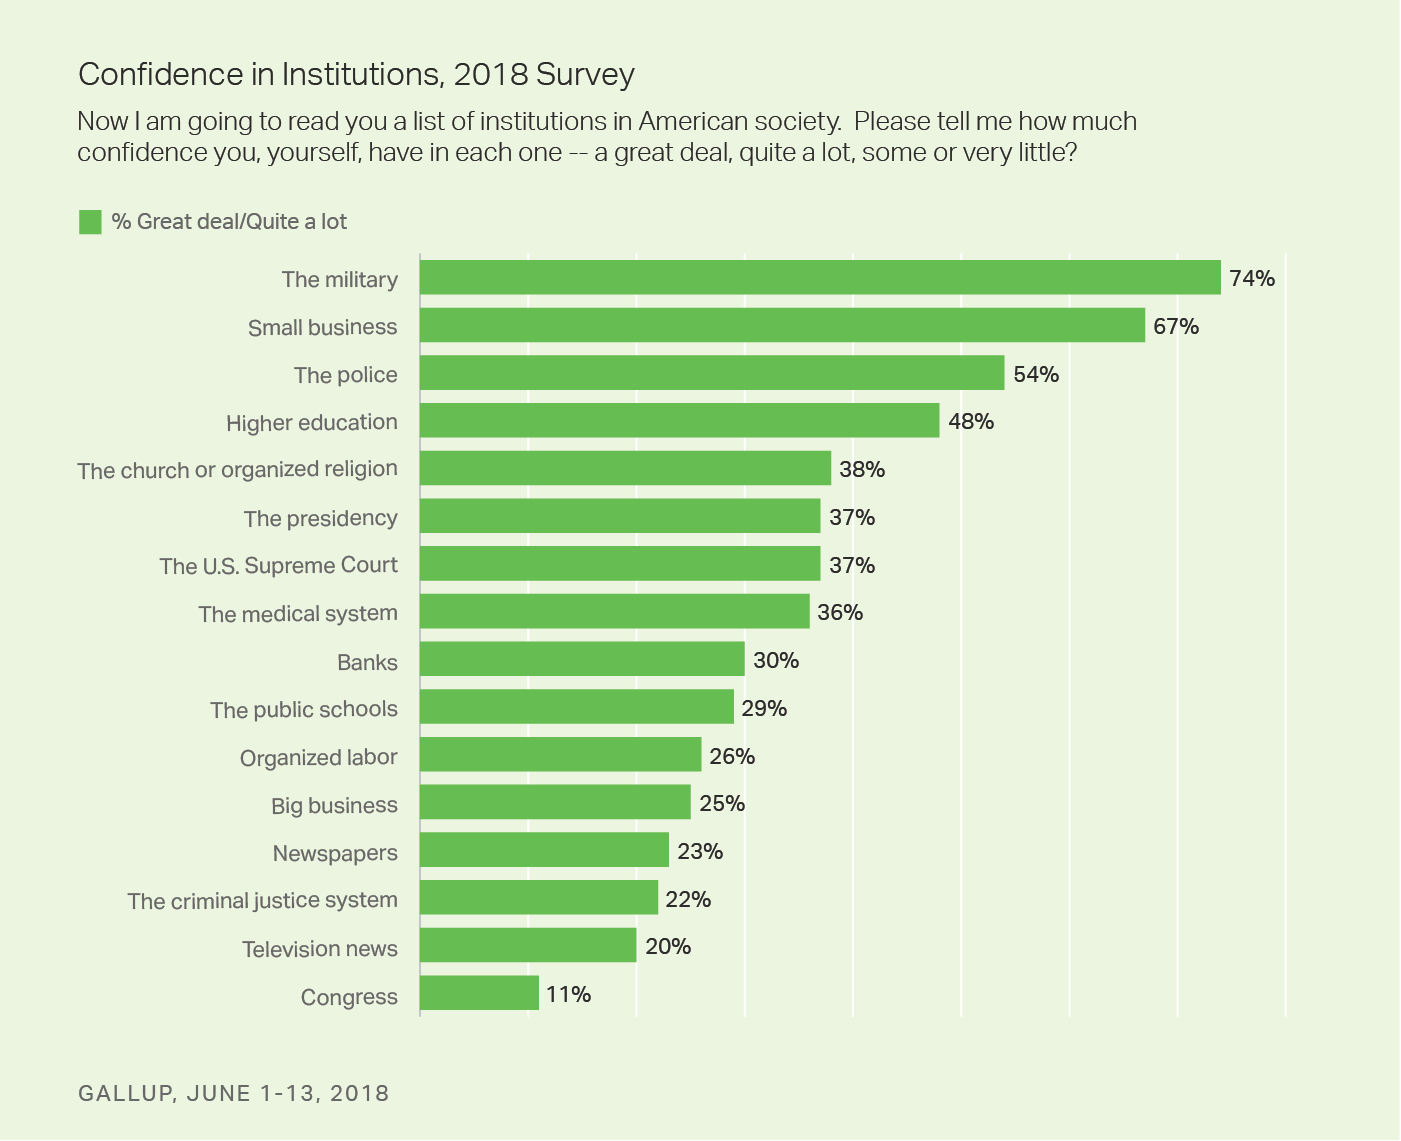 Bar graph. Americans have the most confidence in the military, with 74% expressing confidence in the institution.